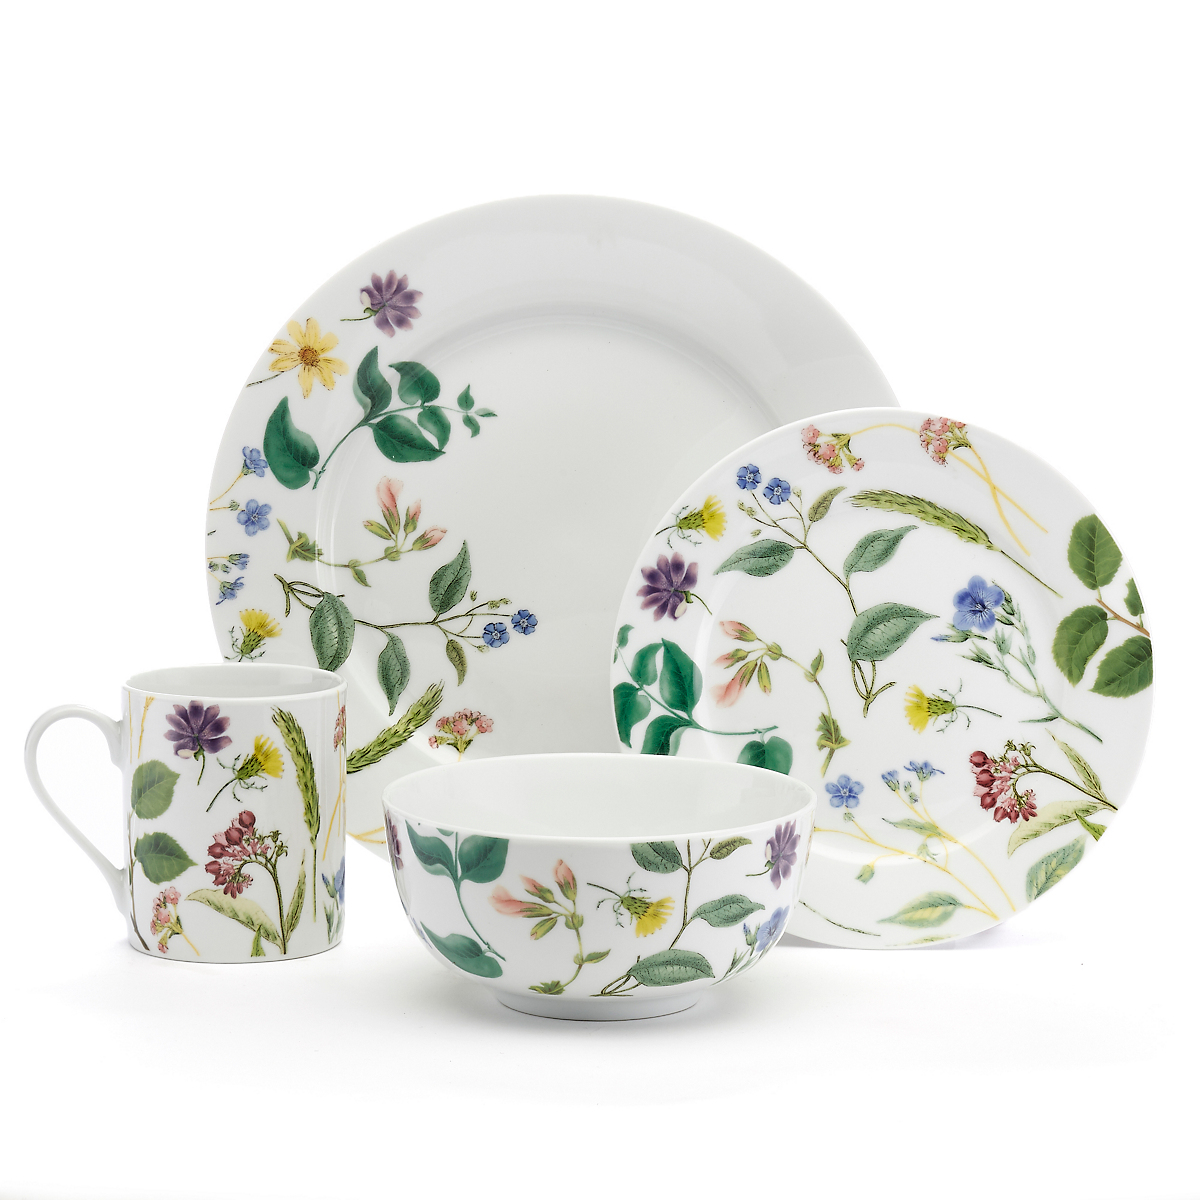 Spode Flower Journal Dinnerware, 16pc Setting